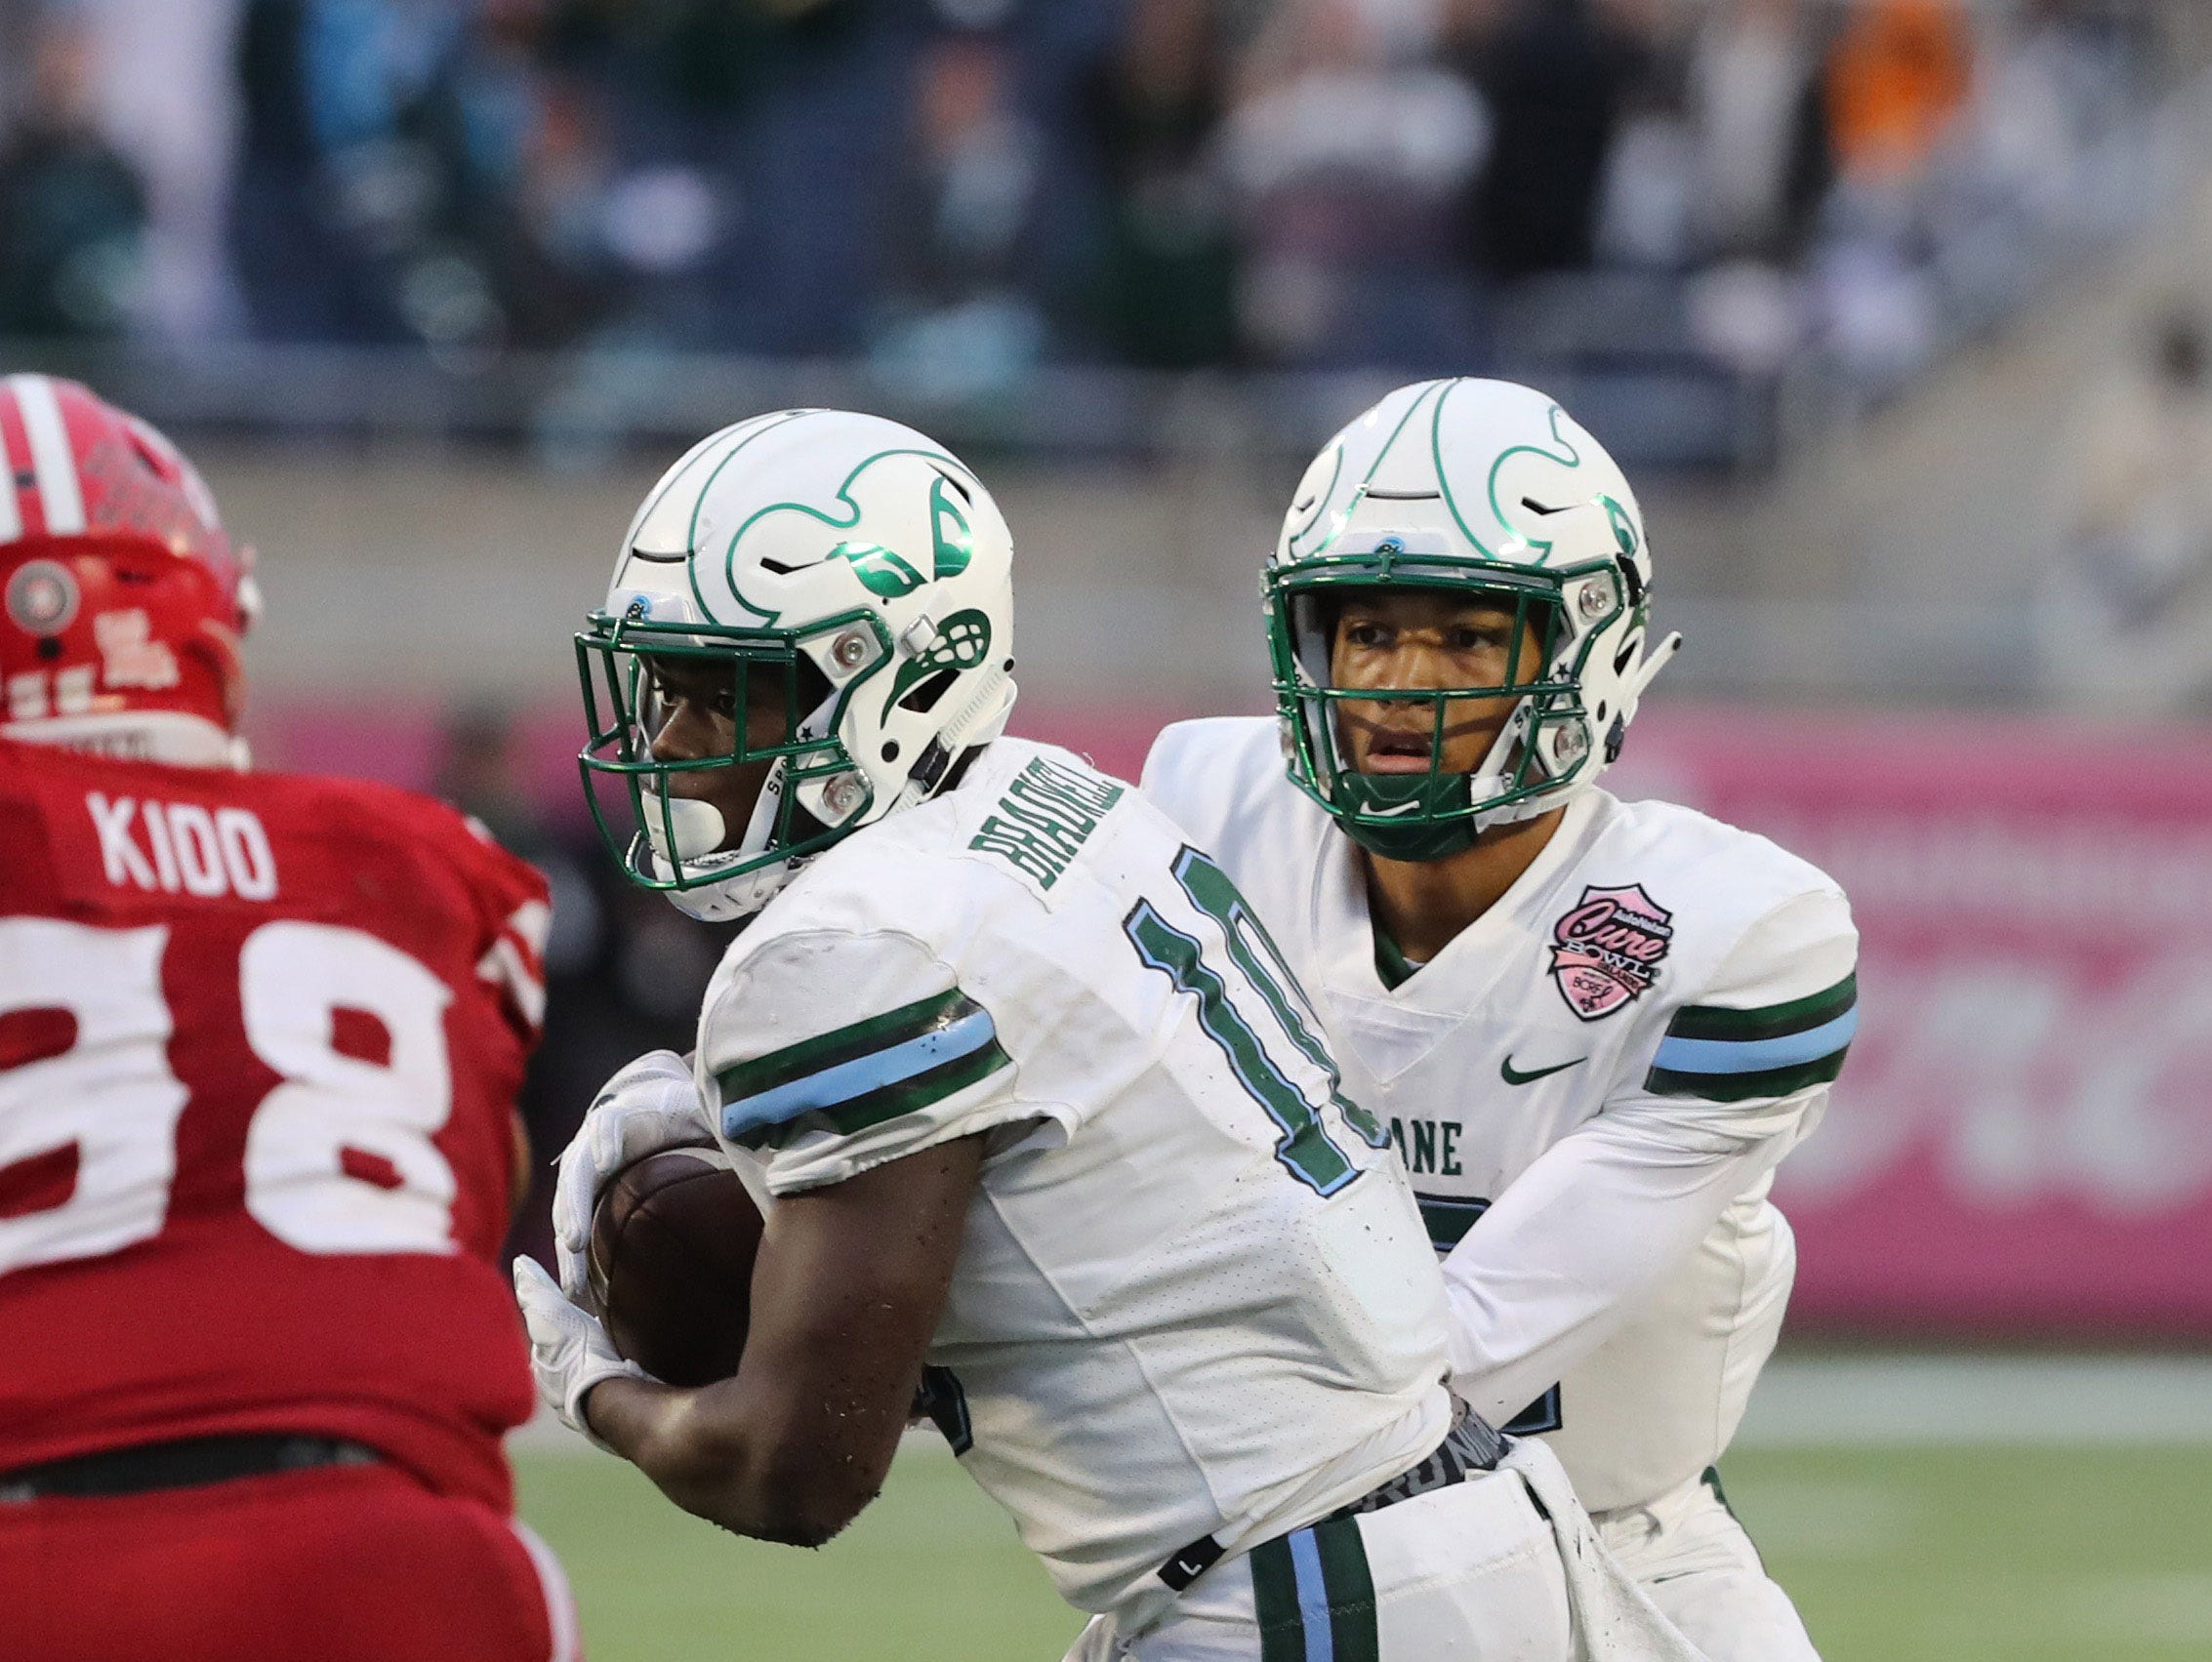 Dec 15, 2018; Orlando, FL, USA; Tulane Green Wave quarterback Justin McMillan (12) hands the ball off to Tulane Green Wave running back Darius Bradwell (10)  against the Louisiana-Lafayette Ragin Cajuns during the second half at Camping World Stadium. Mandatory Credit: Kim Klement-USA TODAY Sports